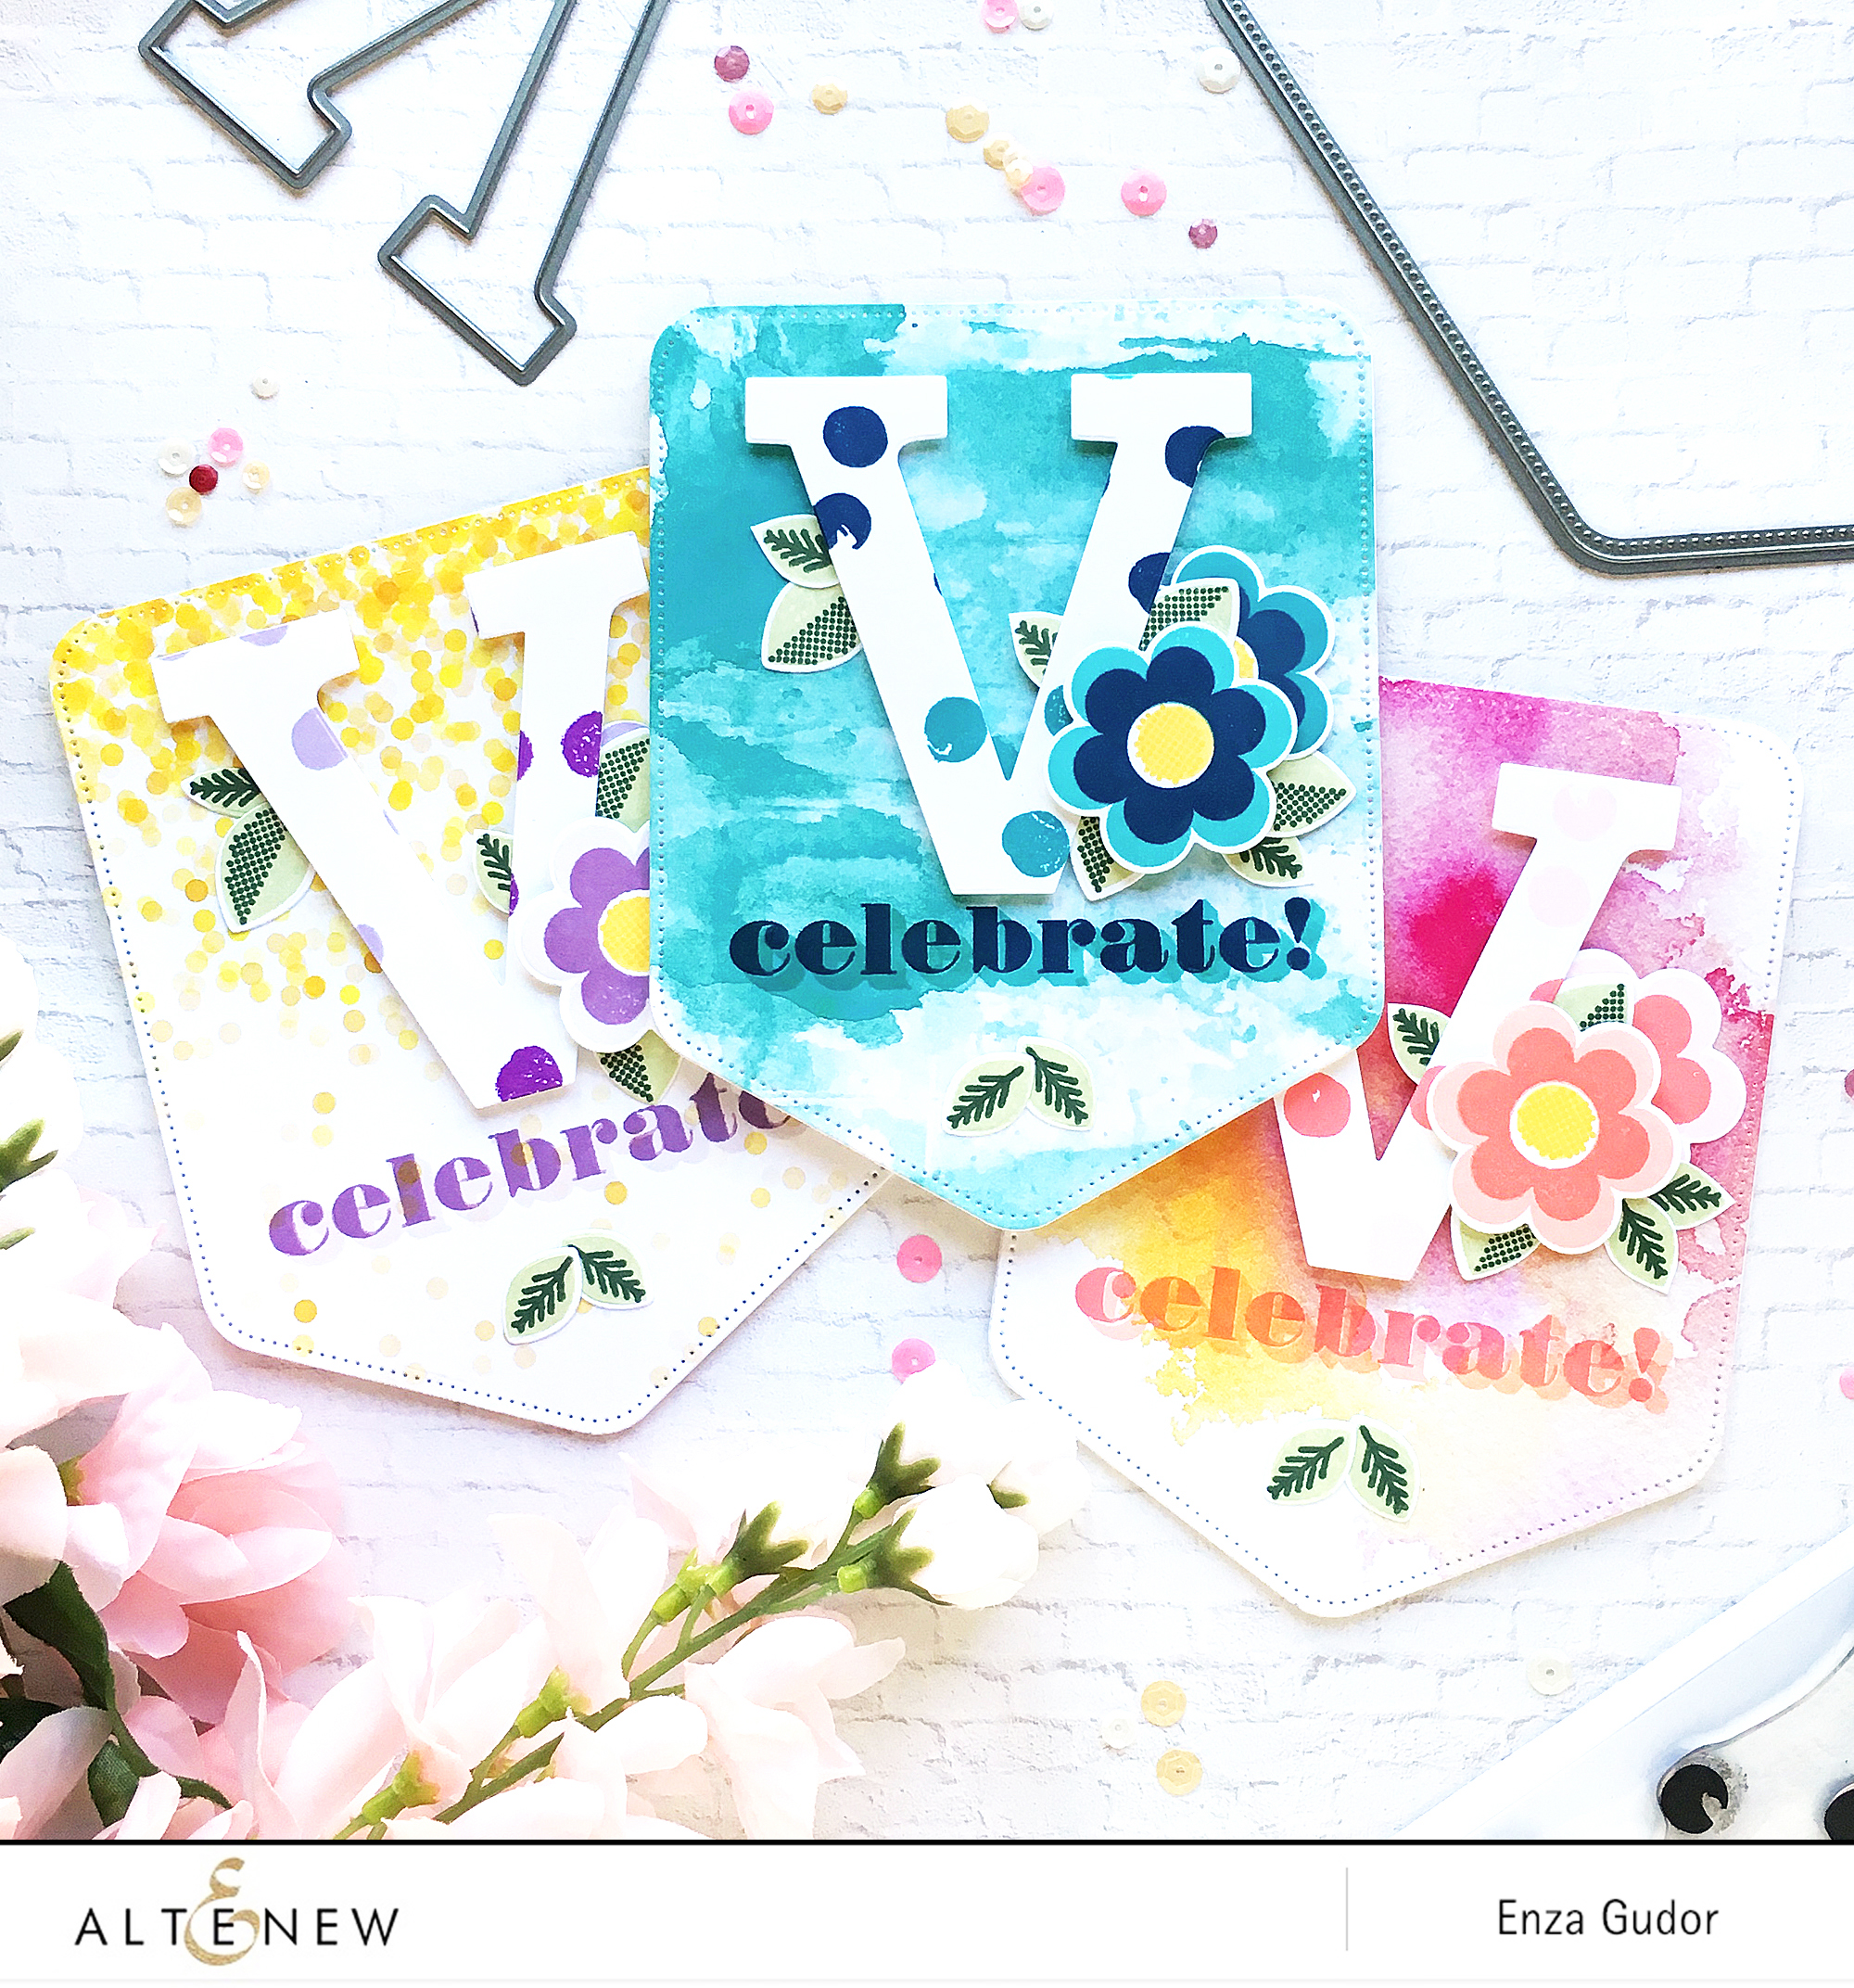 Birthday Party Invitations by @enzamg for @altenew. #altenew #stamping #birthday #diecutting #diy #partyinvites